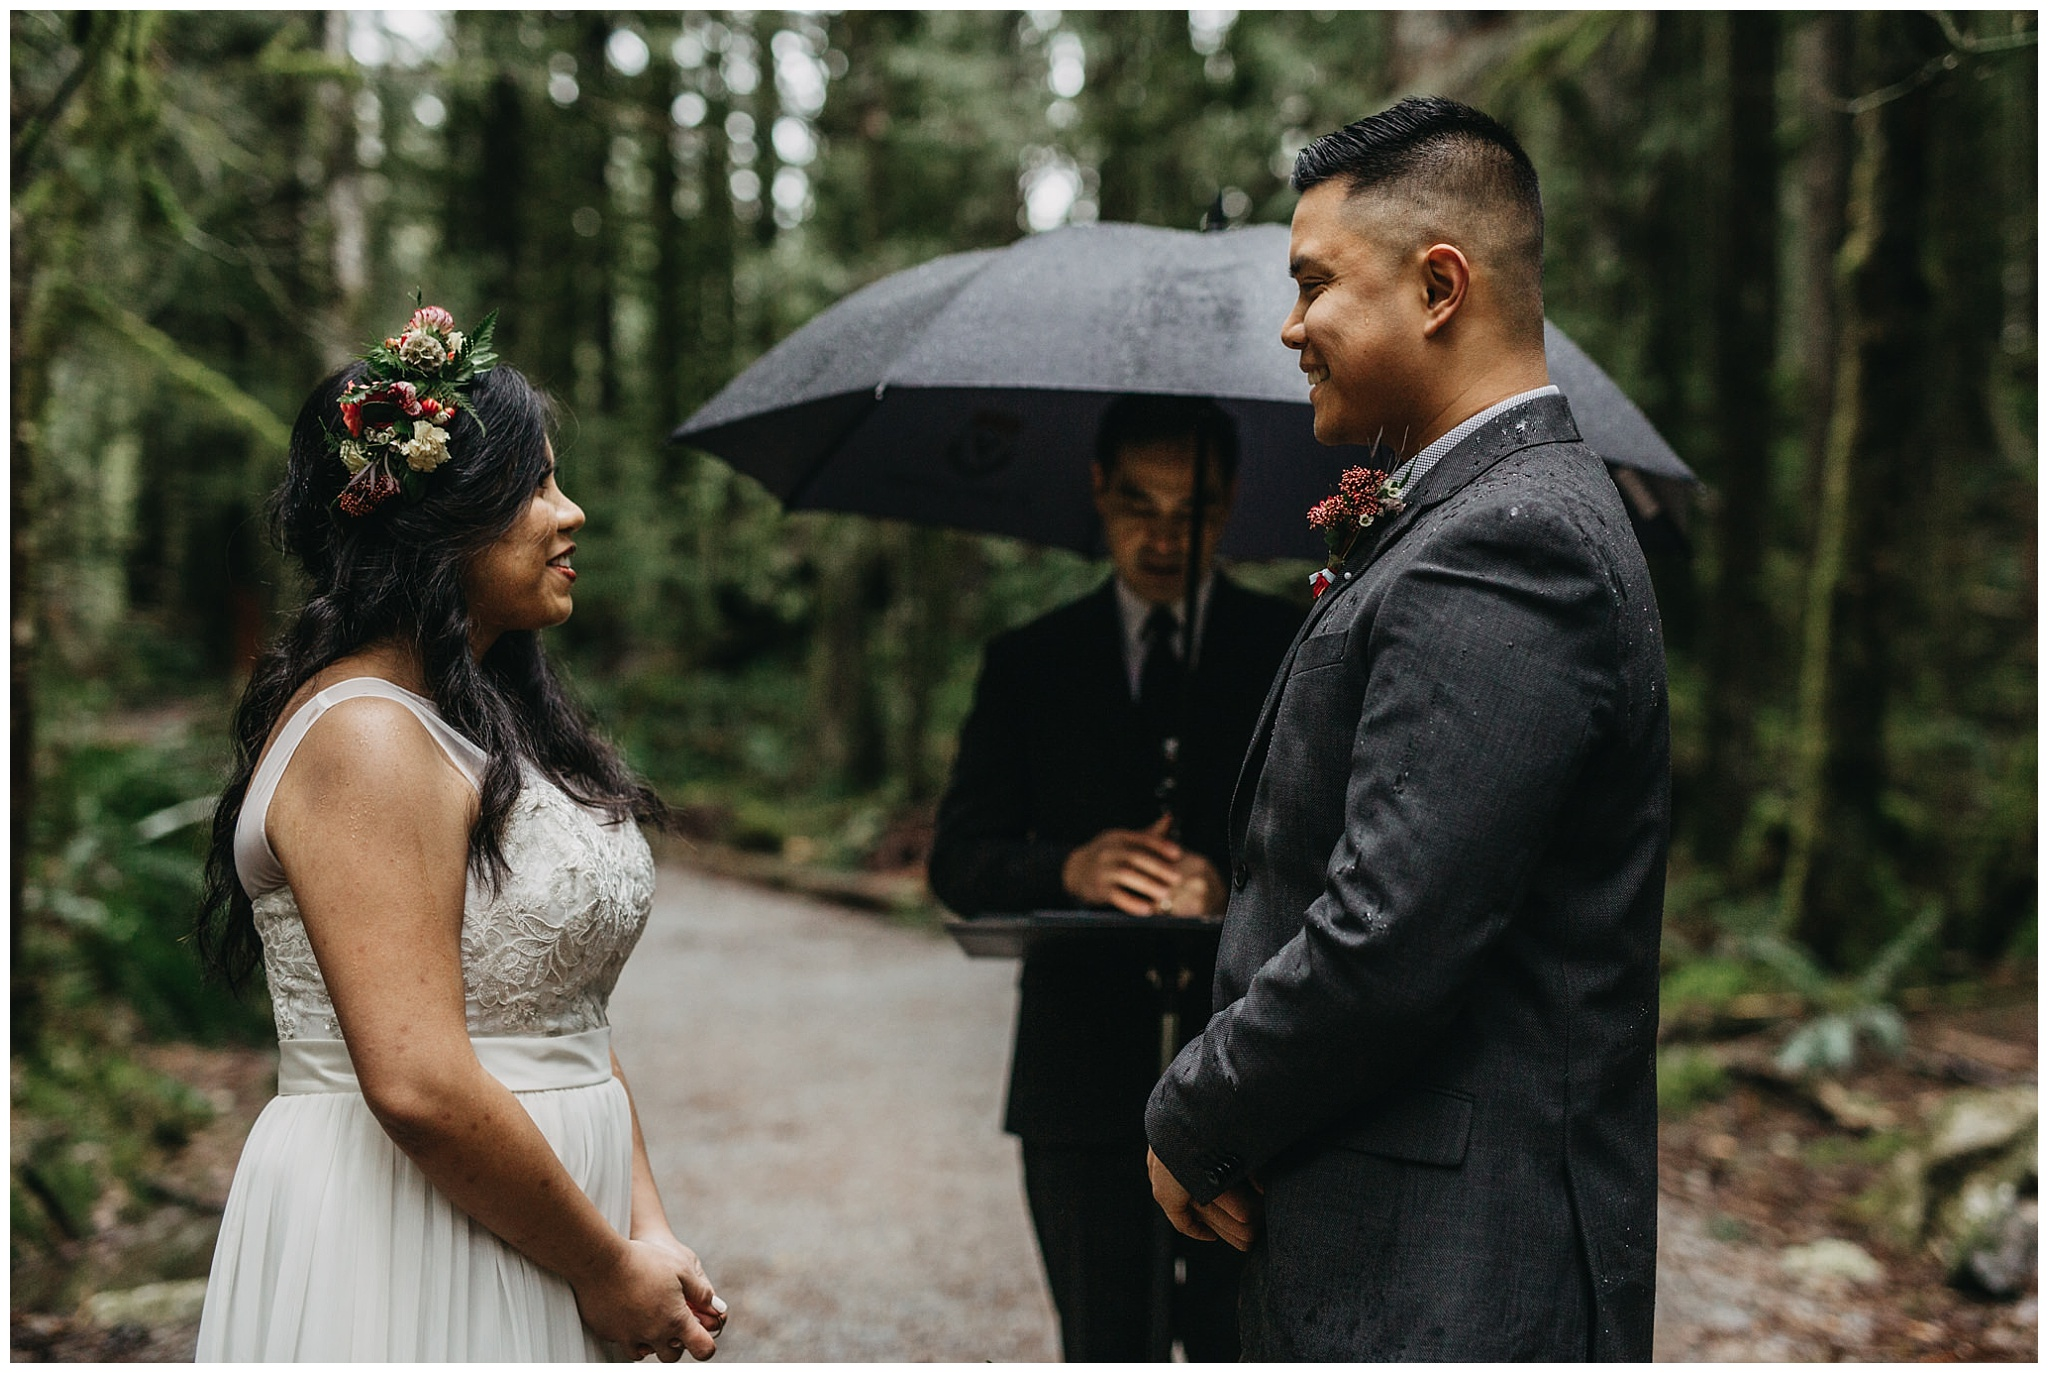 bride groom during ceremony smile happy intimate forest wedding